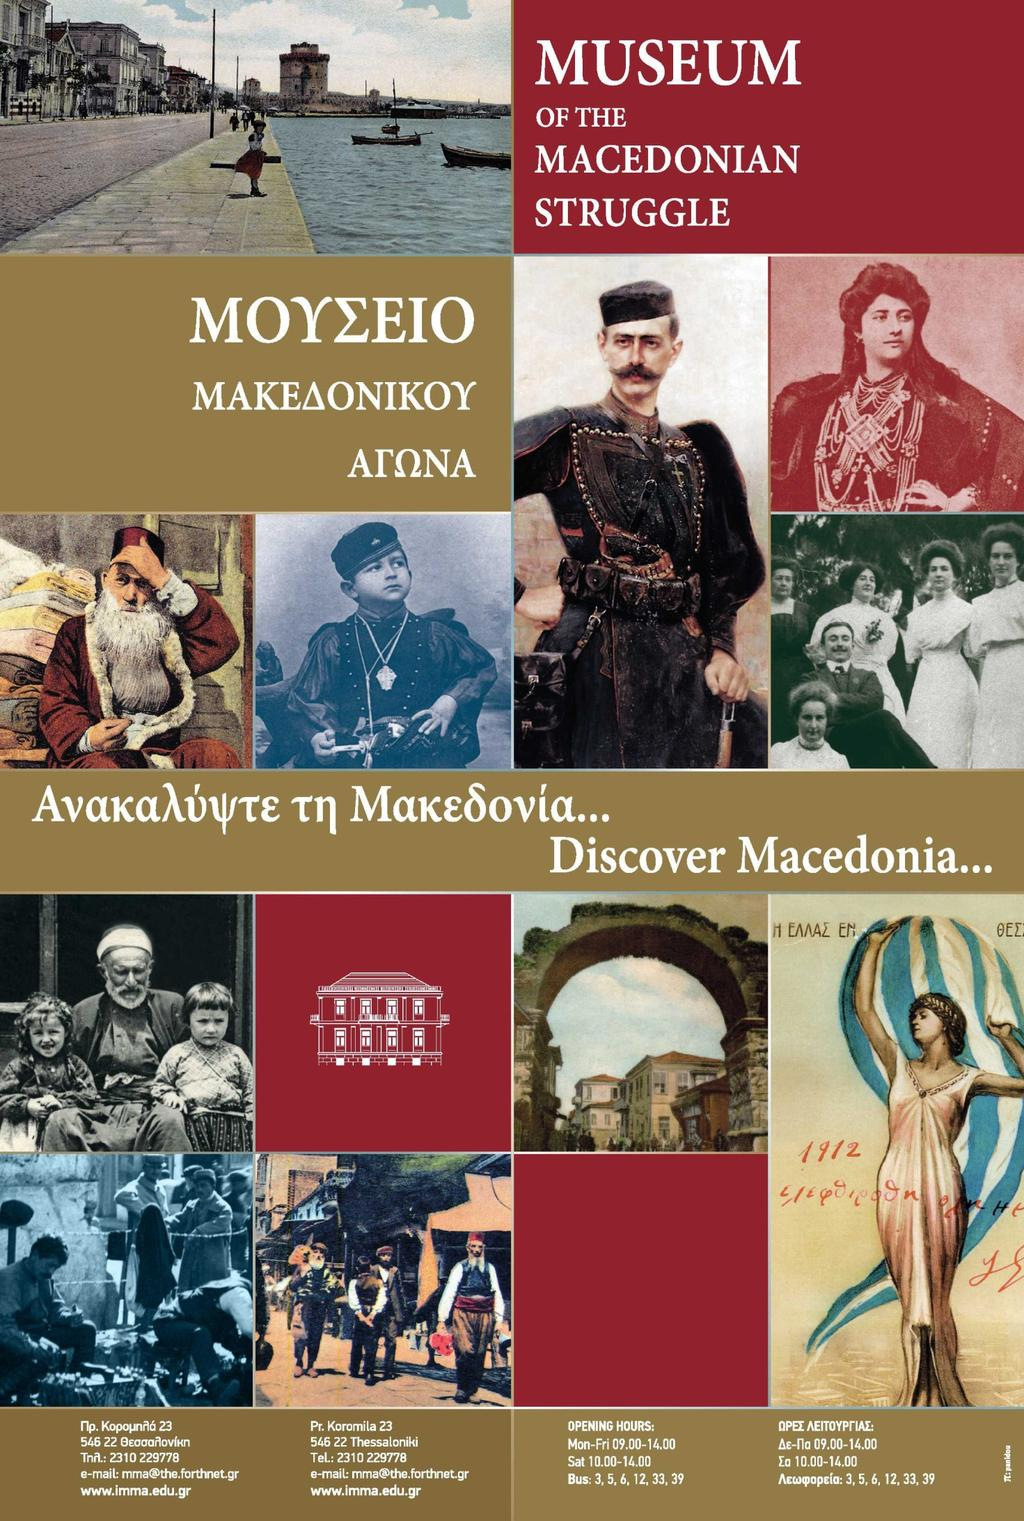 6 Over 90% of the ancient Macedonian Kingdom at King Philip s time is  located within the present province of Greek Macedonia 413a5d9b322